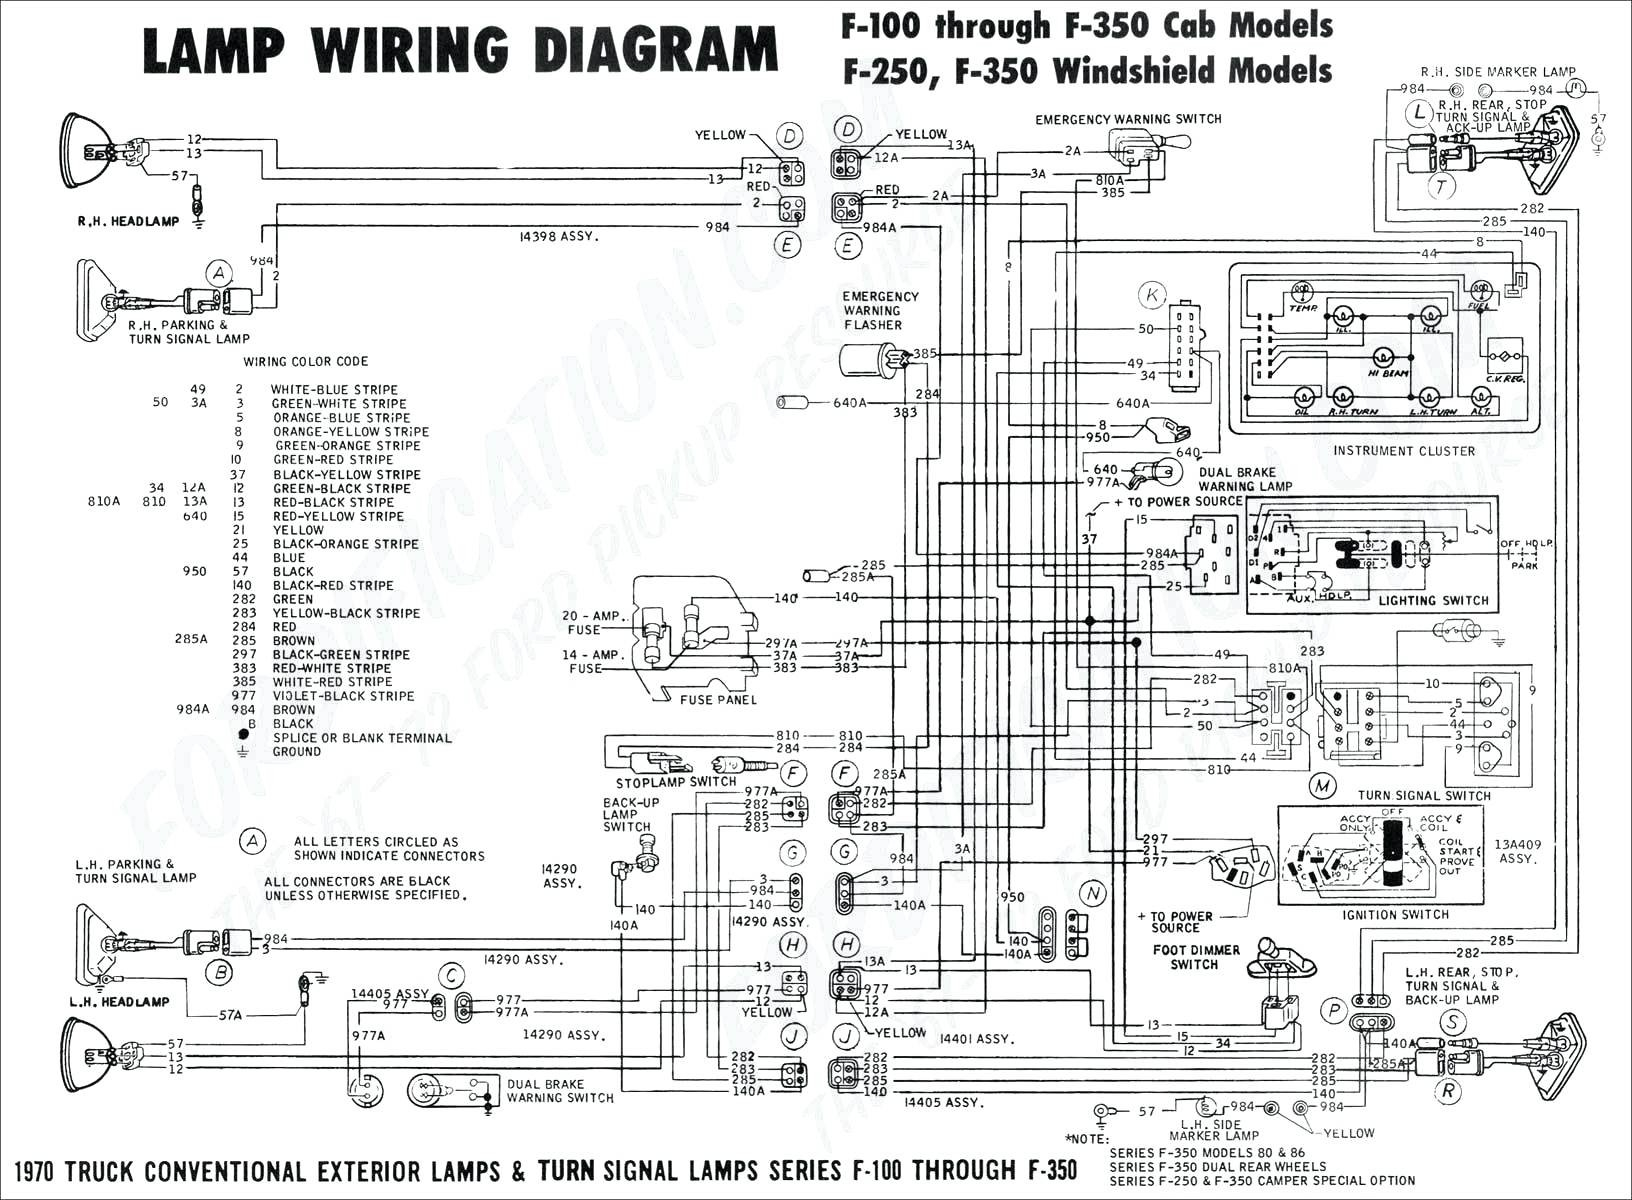 [DIAGRAM] Little Giant Power Cord Wiring Diagram FULL